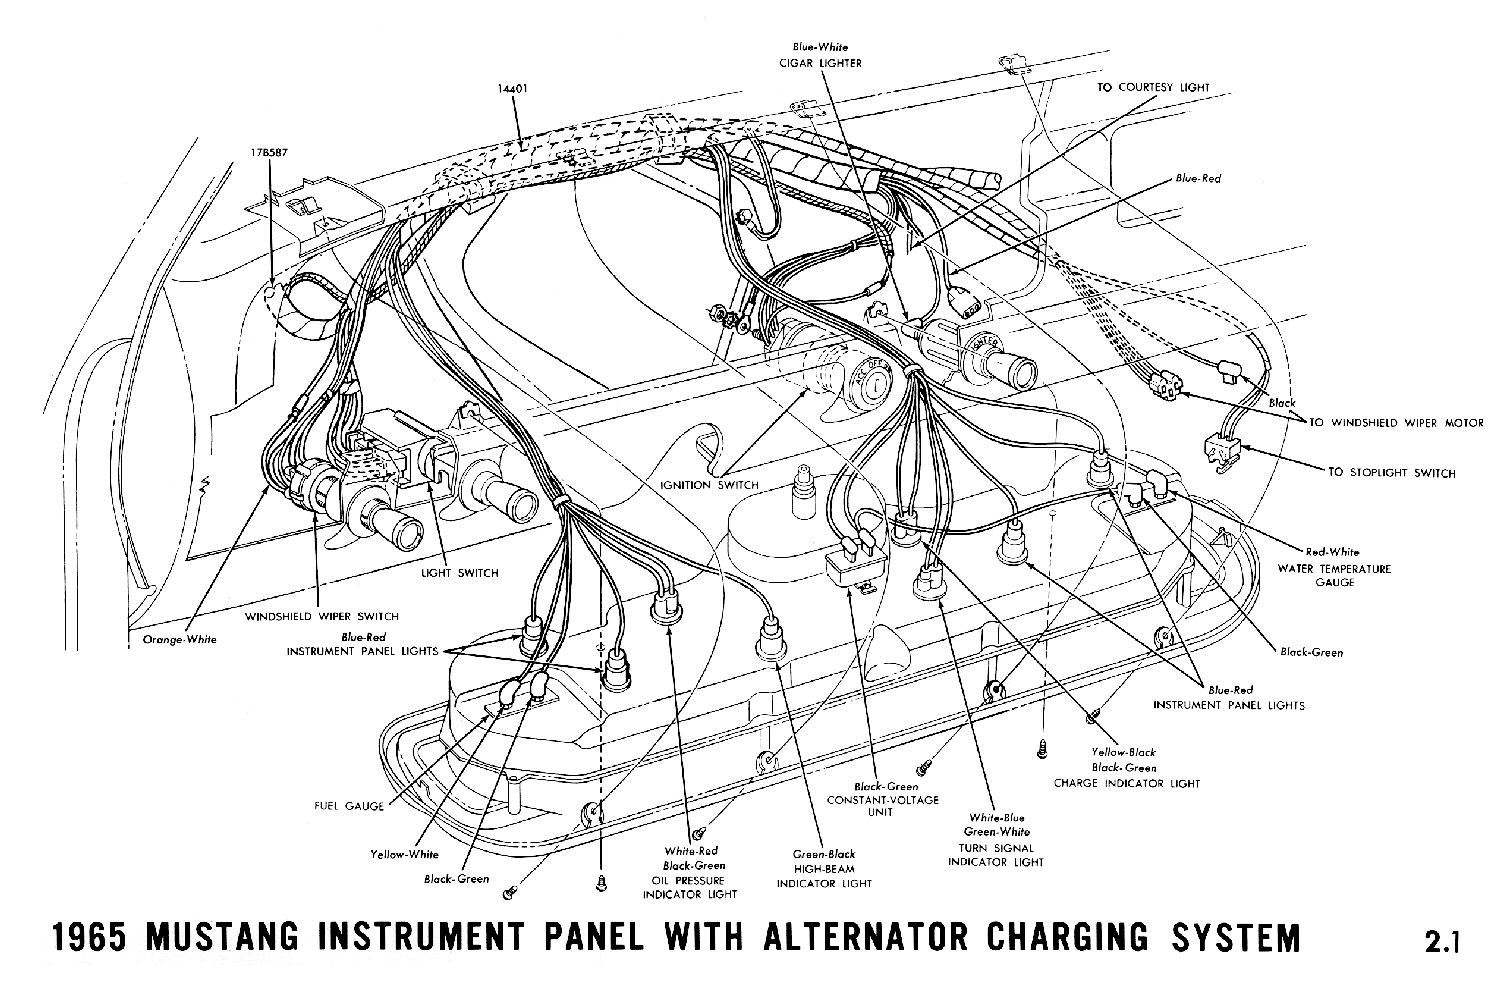 1965 Ford Mustang Wiring Harness Diagram Schematics Galaxie Diagrams Average Joe Restoration 1972 Chevrolet Nova